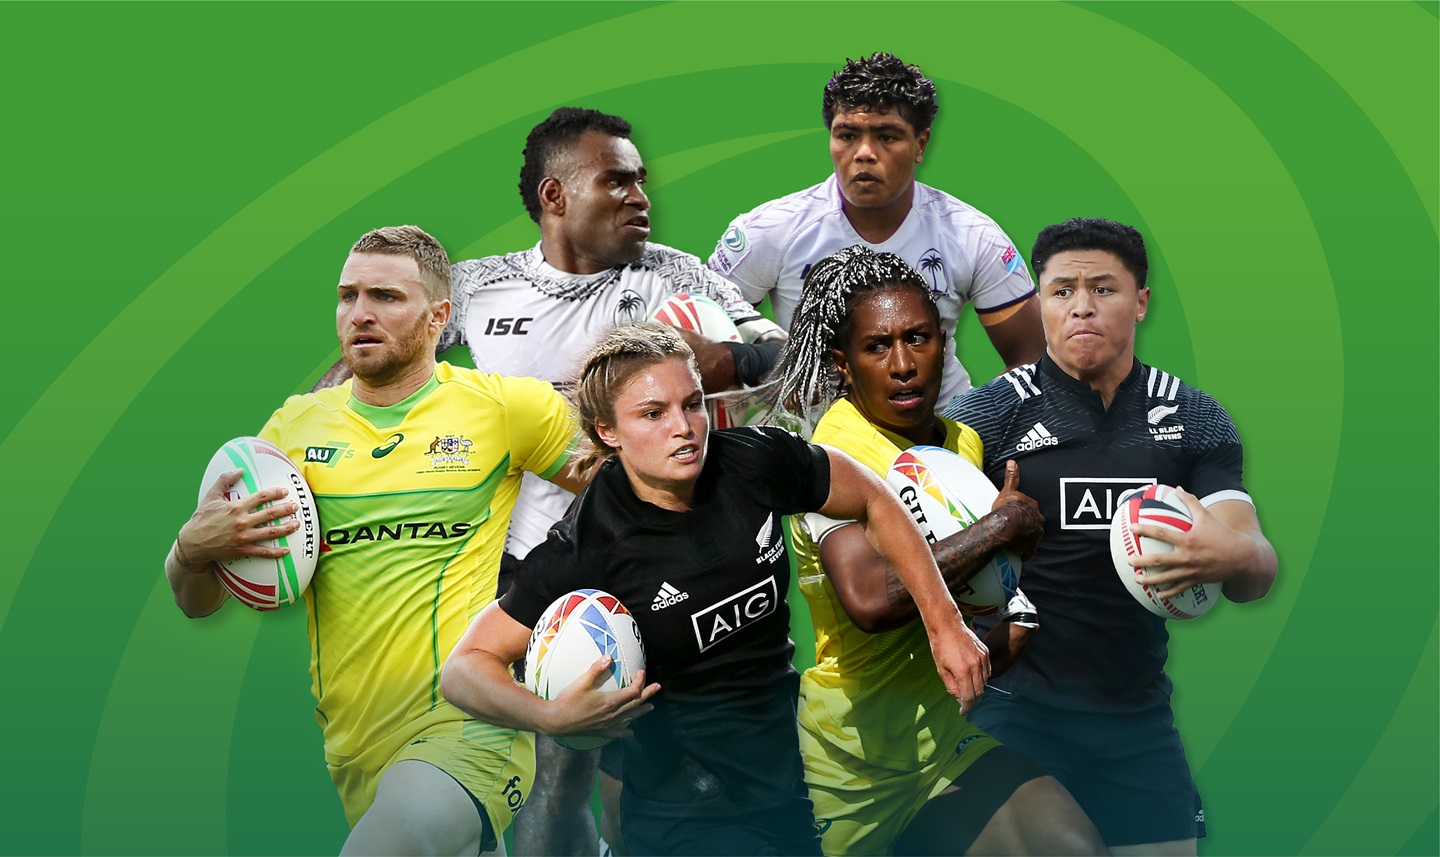 Oceania Sevens Championship rugby